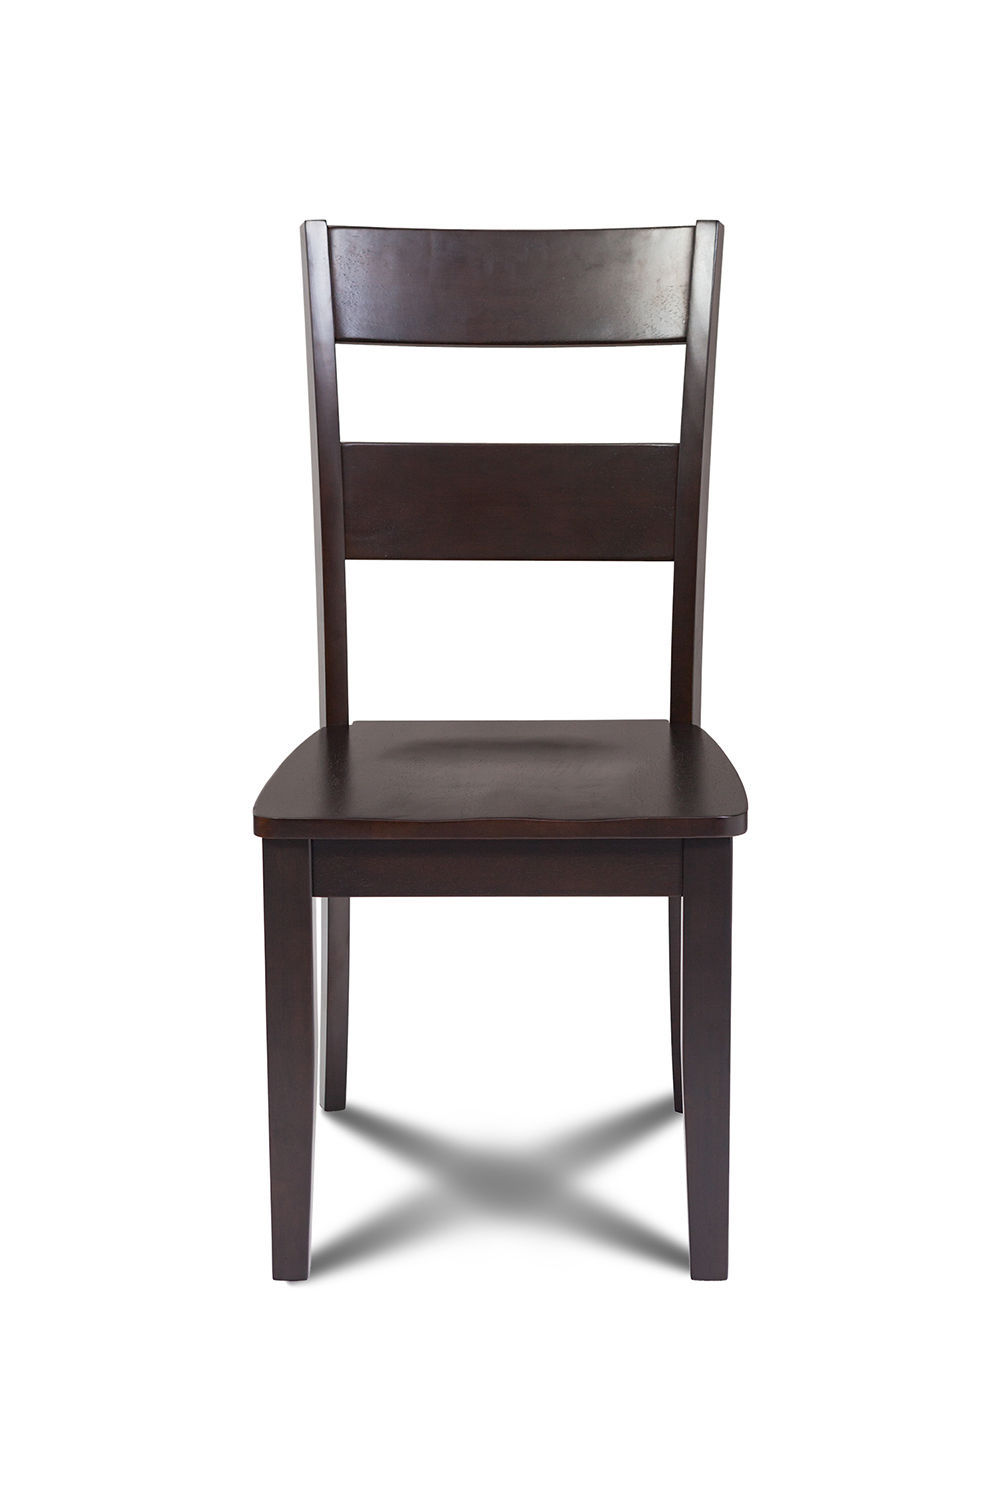 SET OF 6 KITCHEN DINING SIDE CHAIRS w/ WOODEN SEAT IN CAPPUCCINO